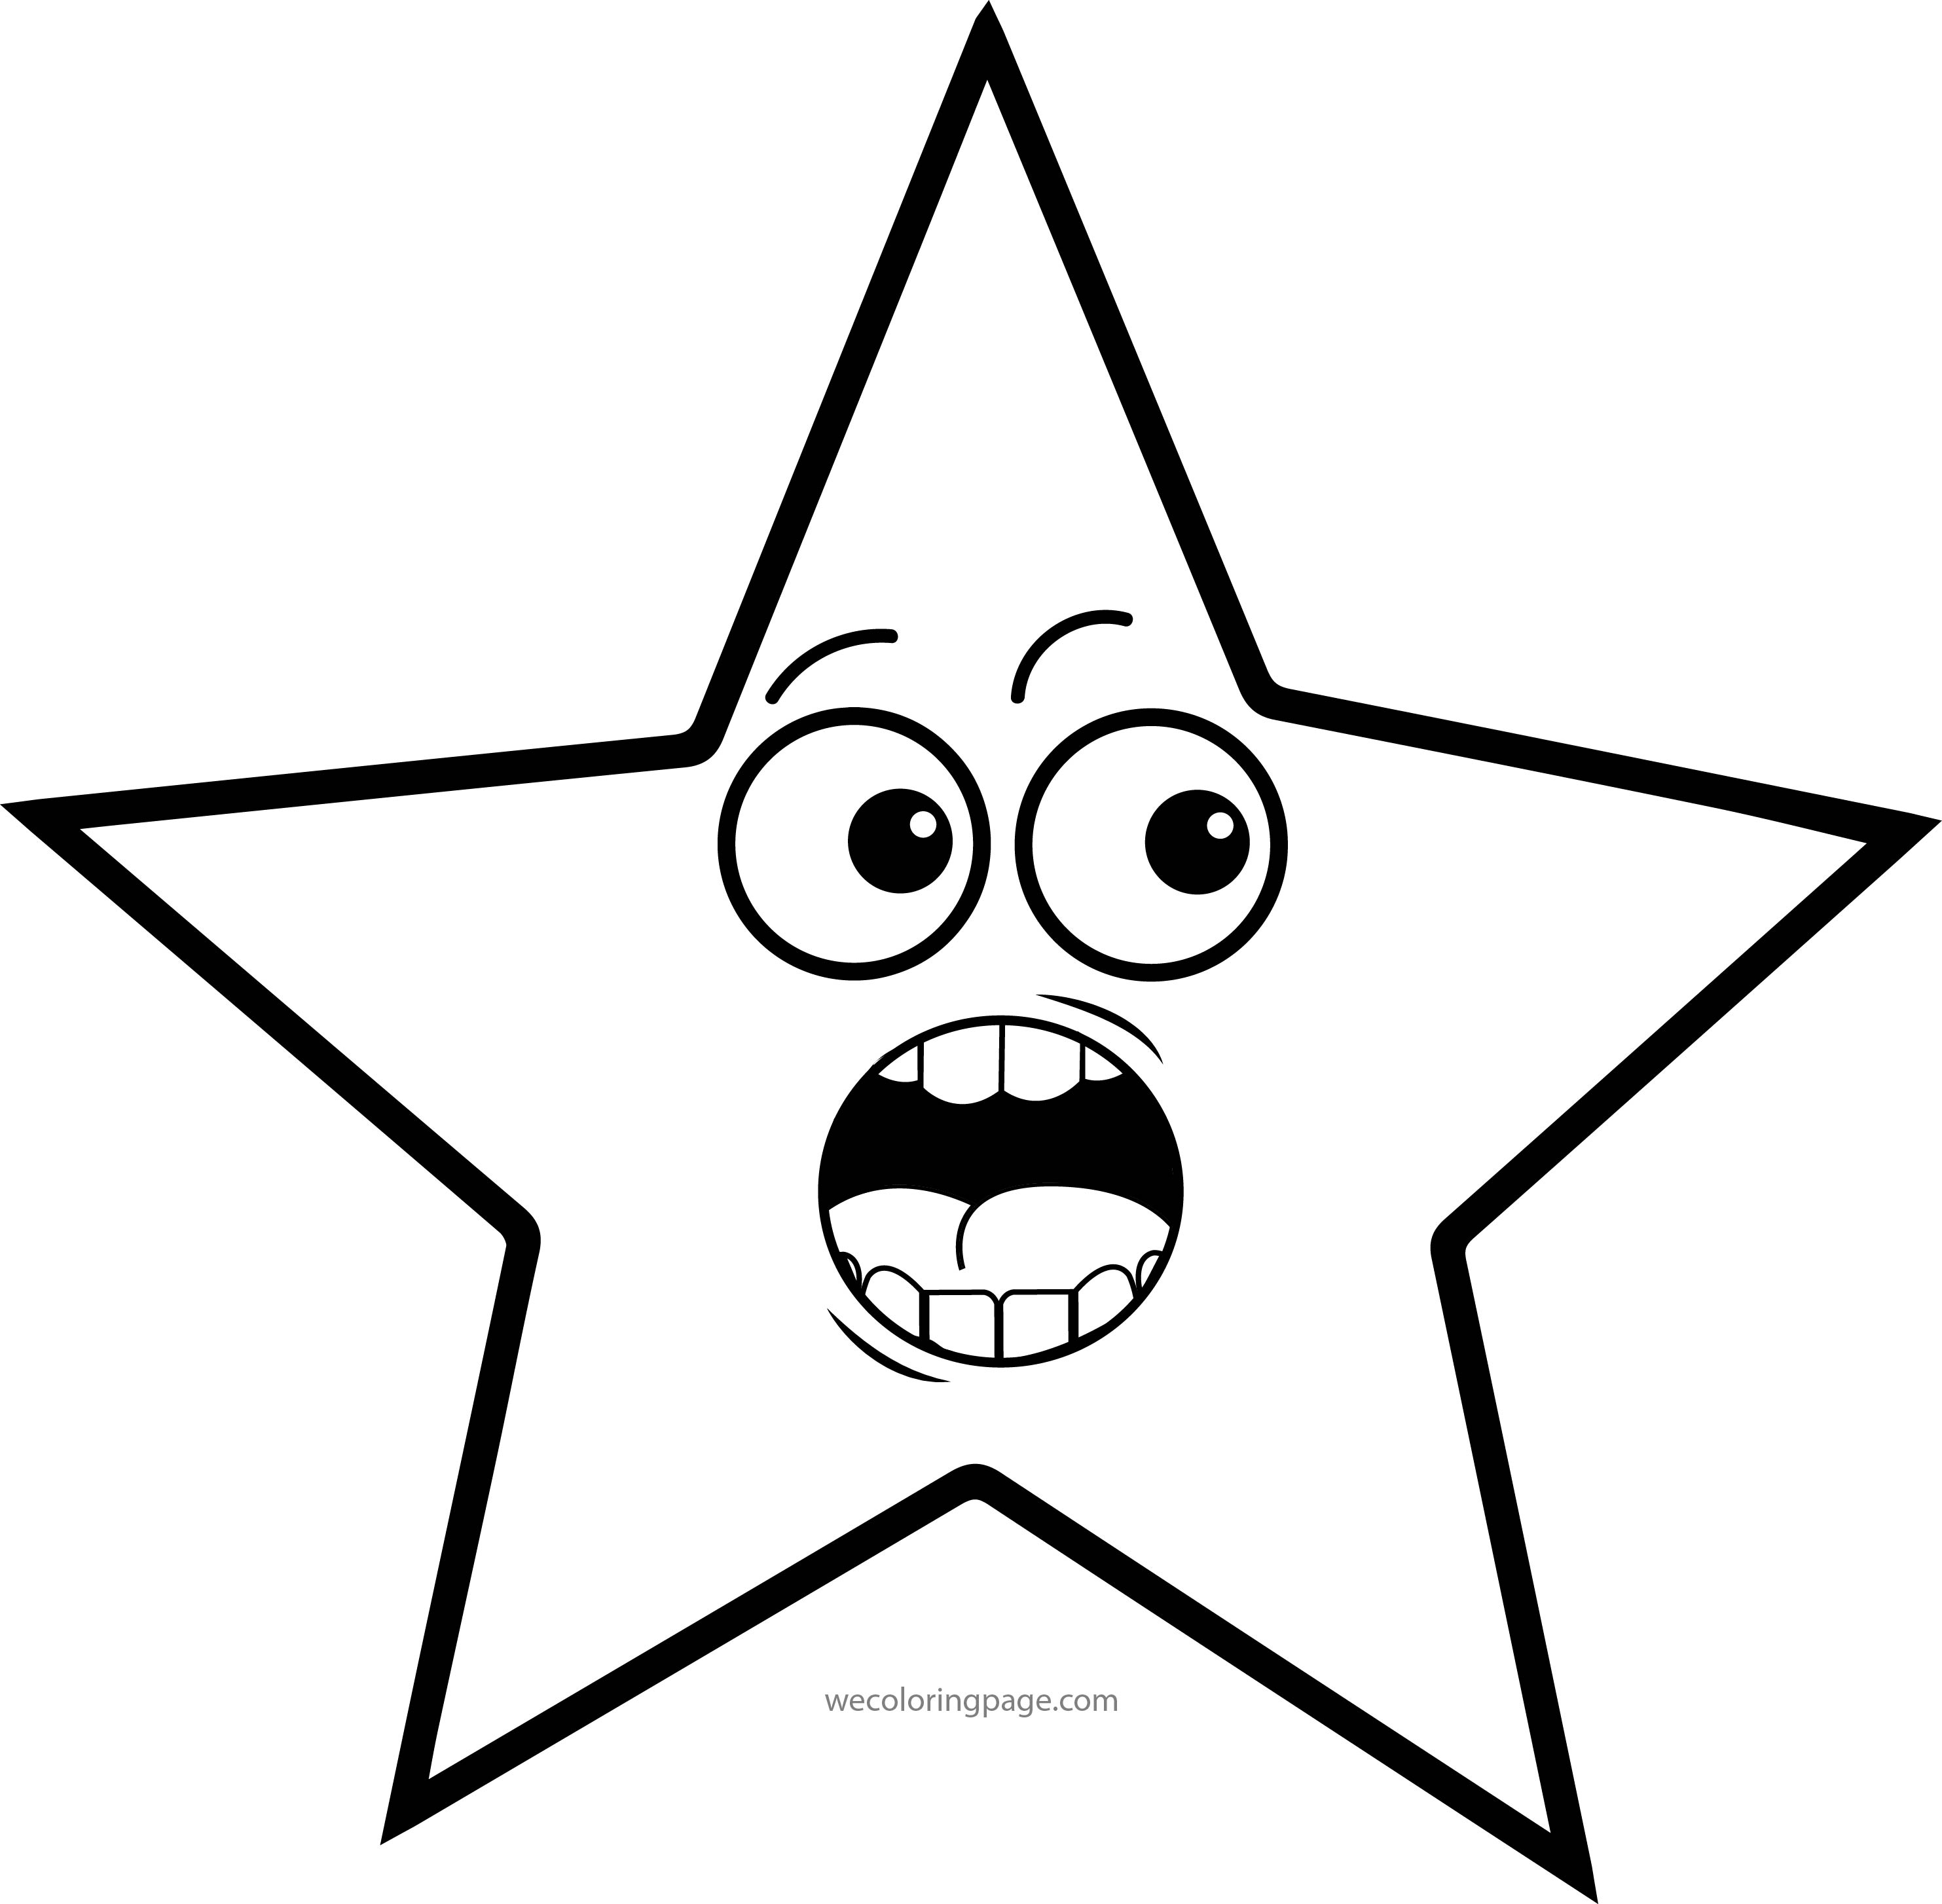 Coloring pages eyes - Stars Coloring Pages Wecoloringpage